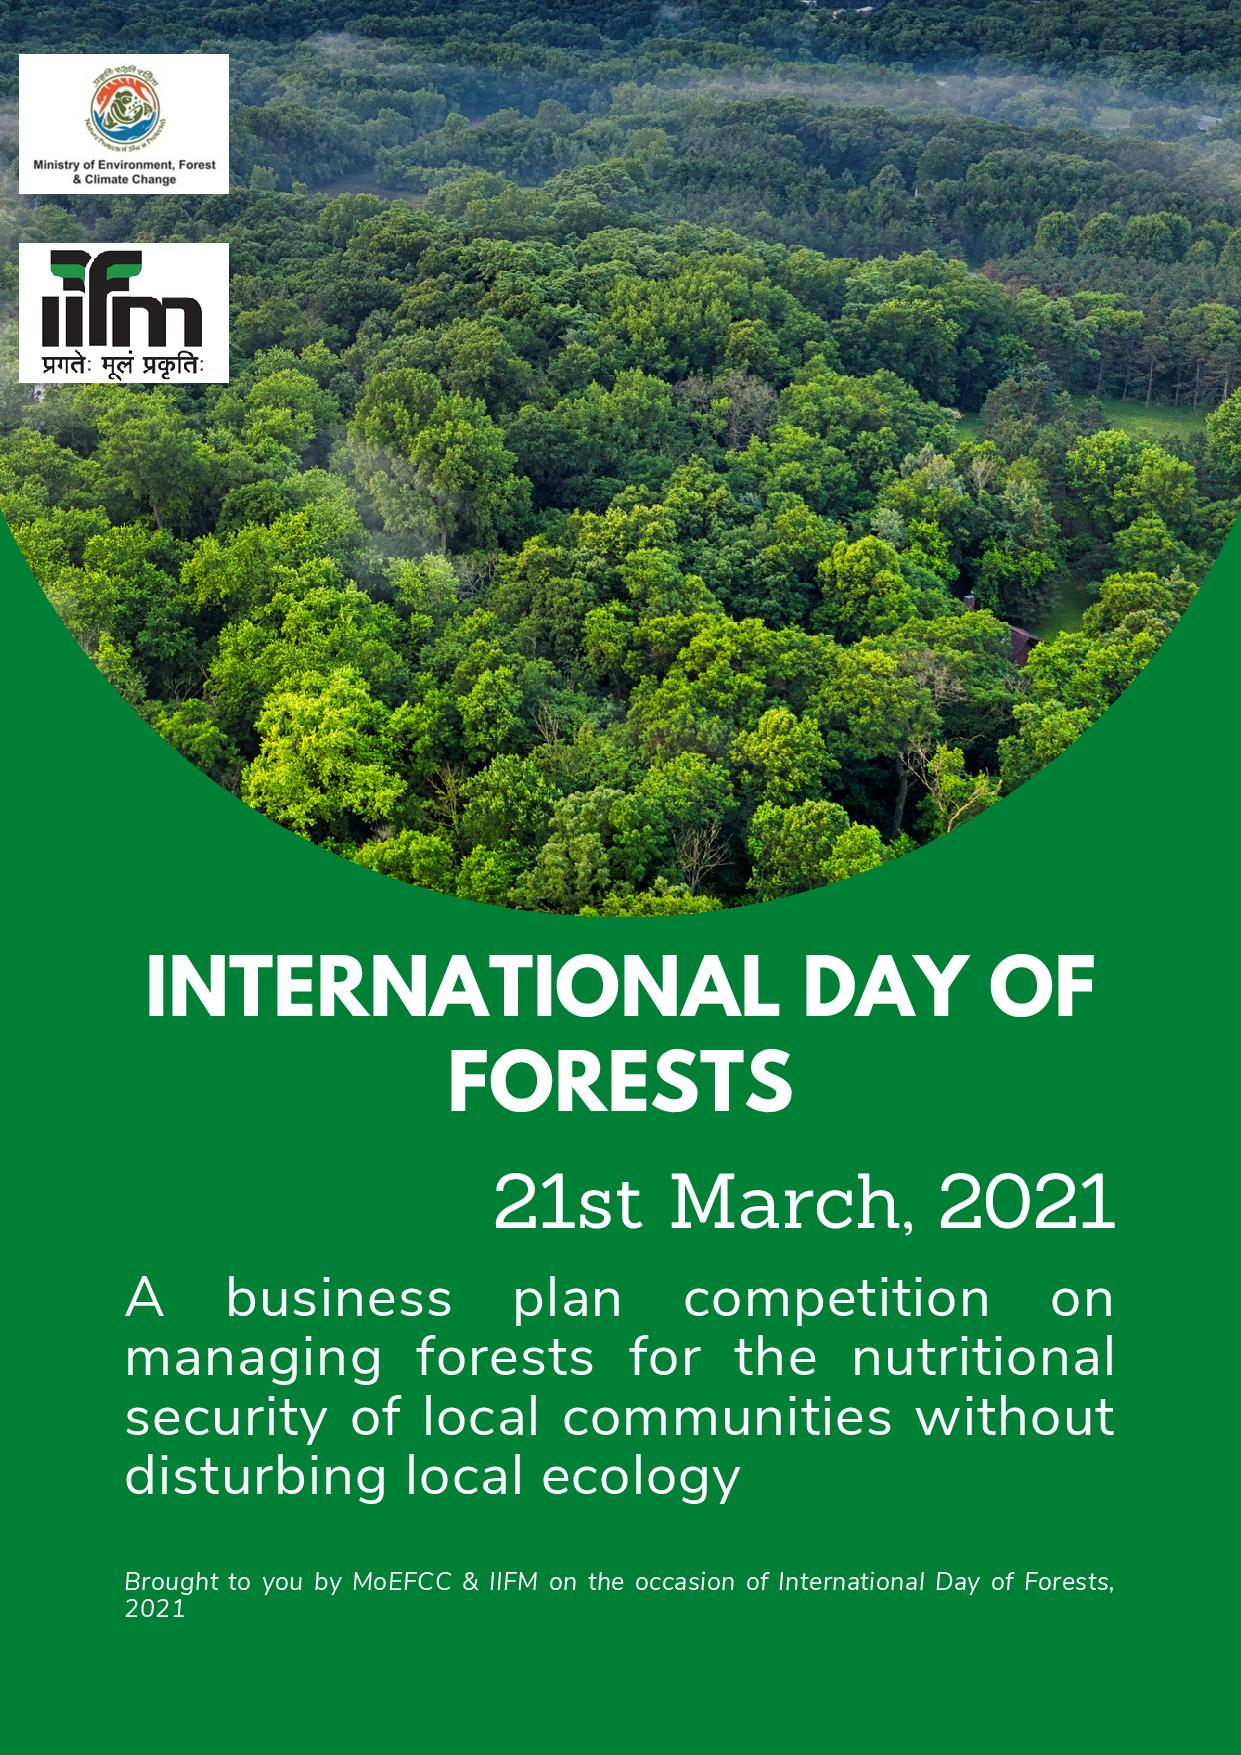 International Day of Forests, 21st March, 2021 (A business plan competition on managing forests for the nutritional security of local communities without disturbing local ecology)